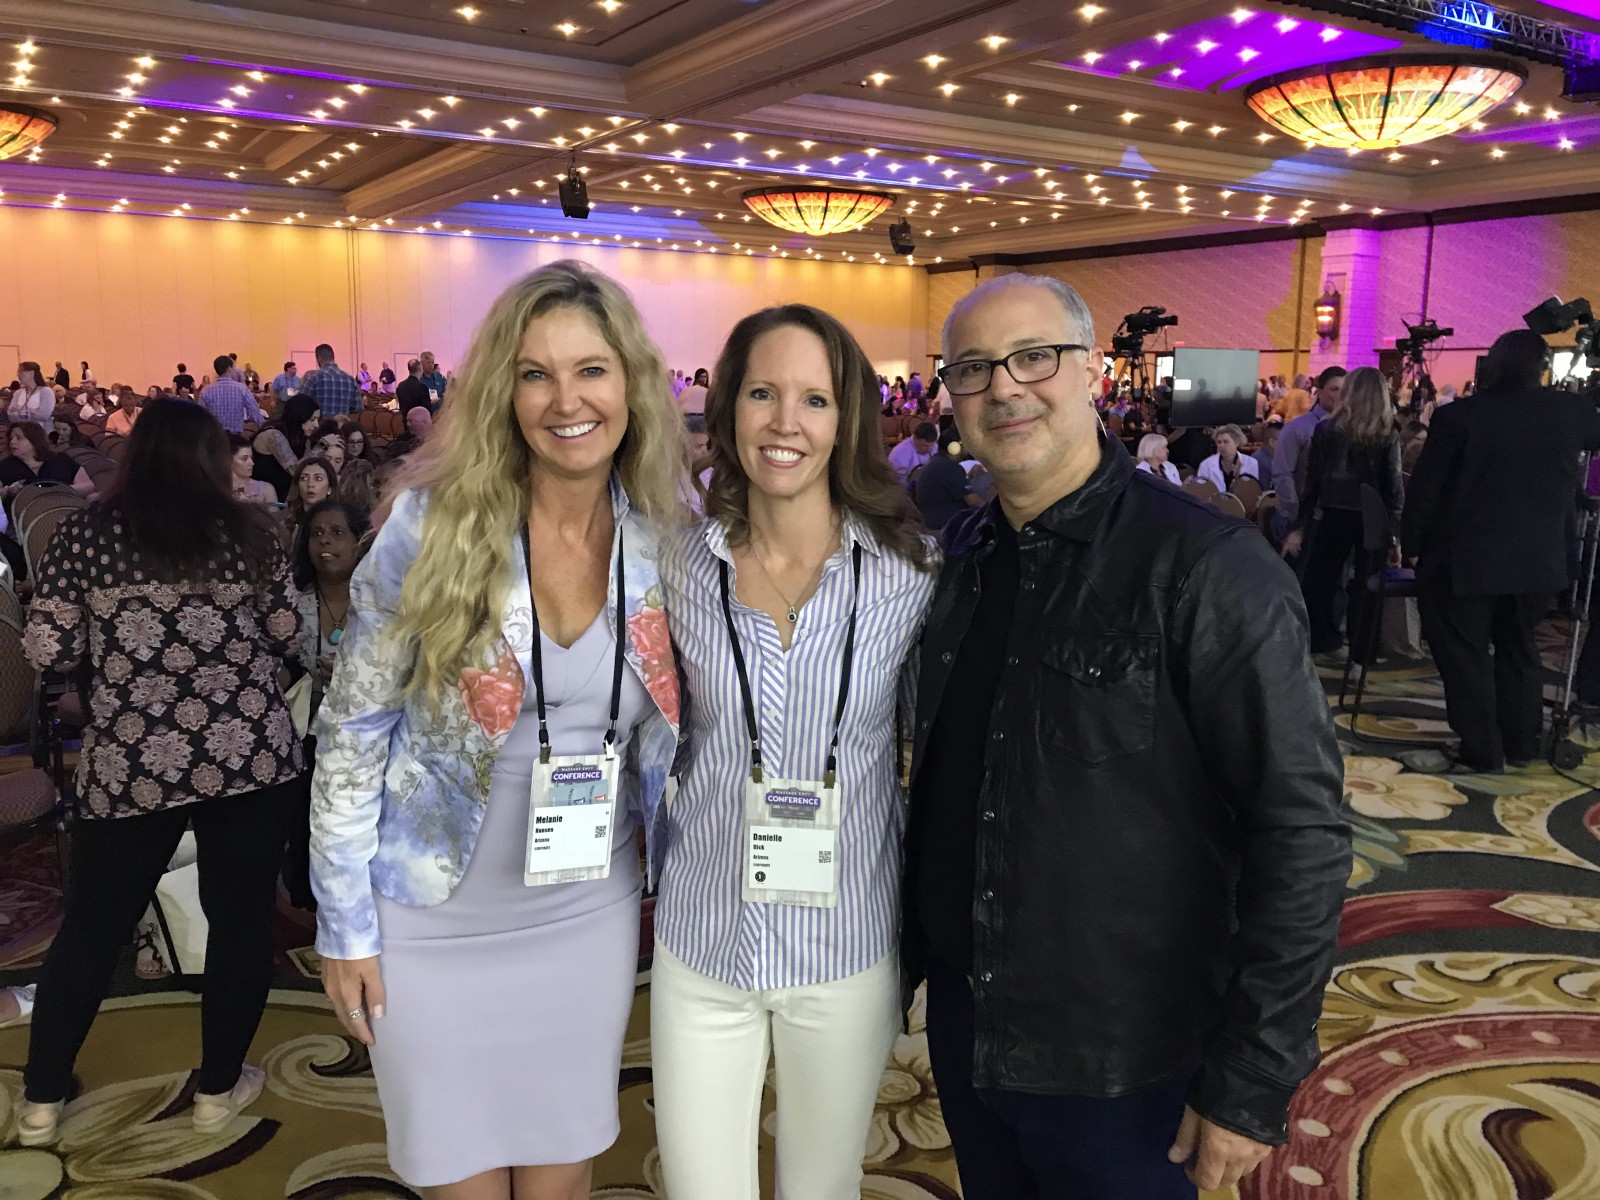 Me At The Massage Envy Convention Center With Melanie Hansen And CEO Joe Magnacca